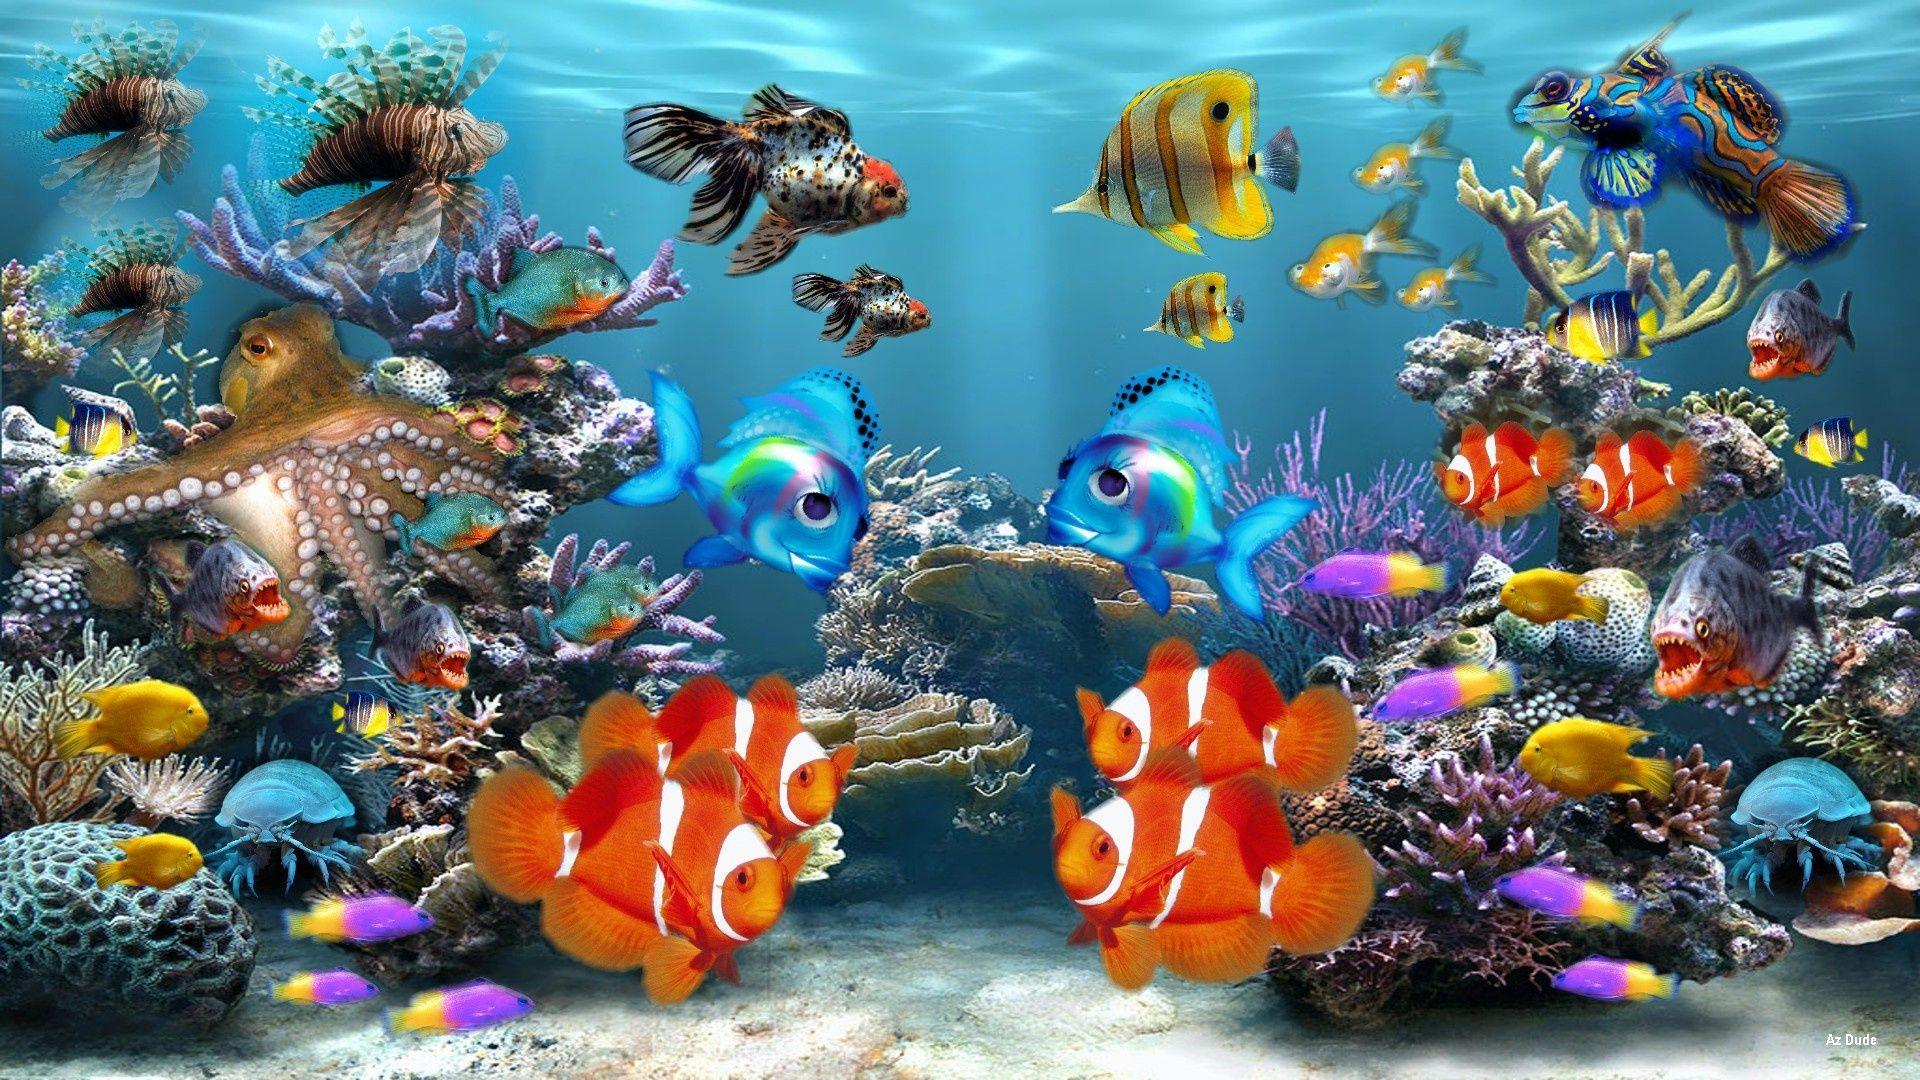 Hd Fish Wallpapers Aquarium Live Wallpaper Fish Wallpaper Aquarium Backgrounds